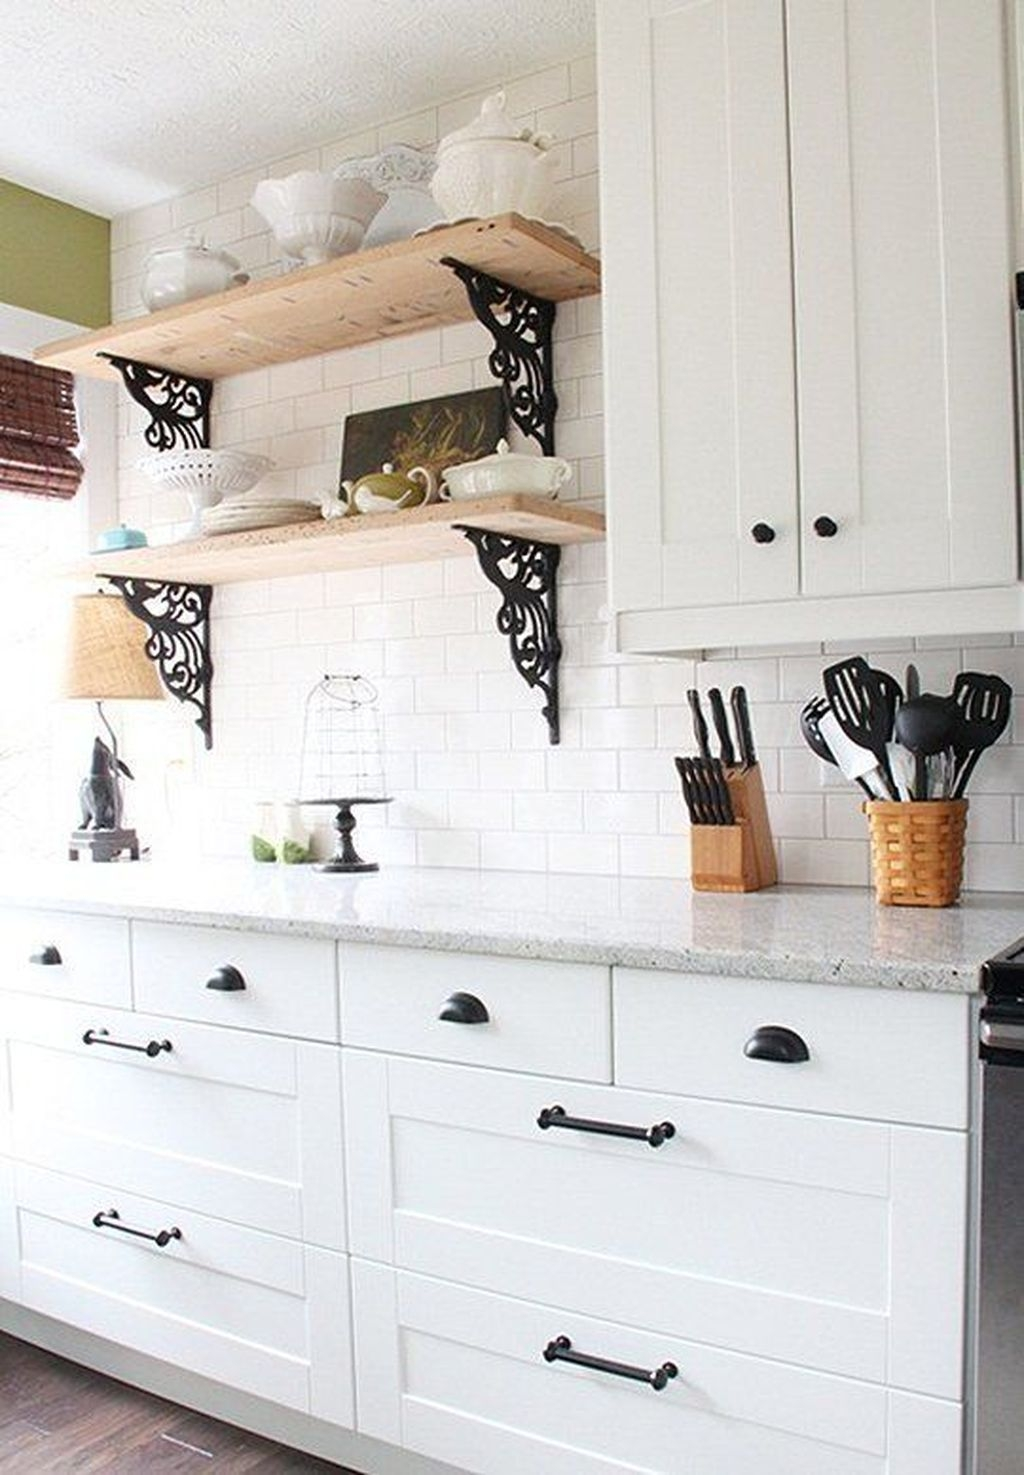 Comfy Kitchen Remodel Ideas For Small Kitchen18